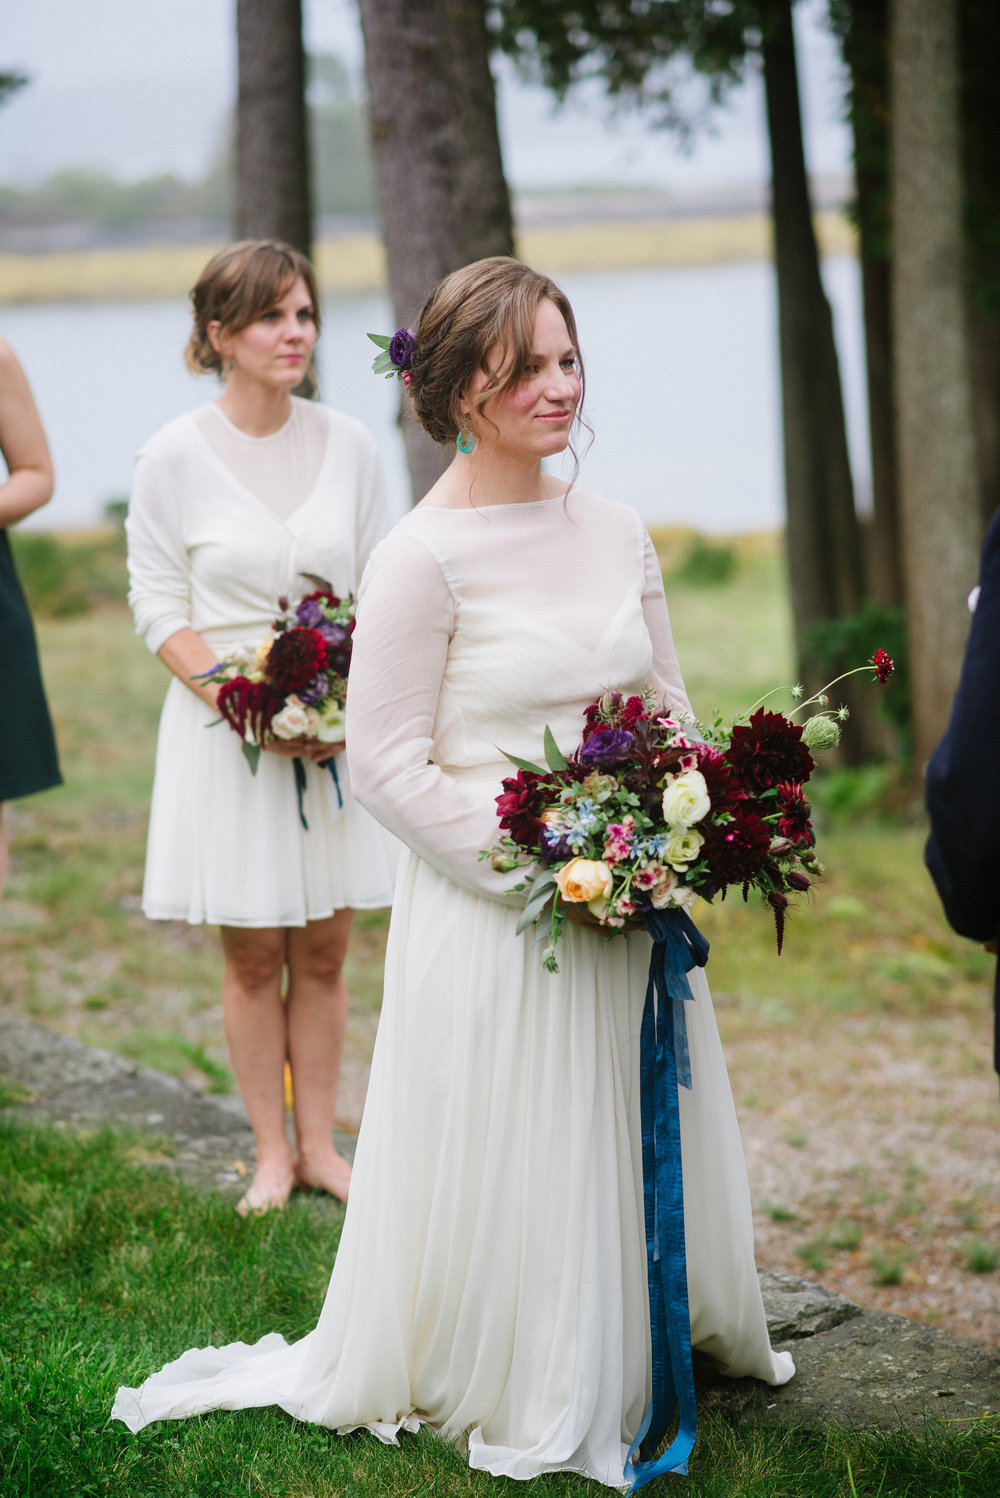 Watershed_Floral_Harpswell_Maine_Coastal_Wedding_0211.JPG